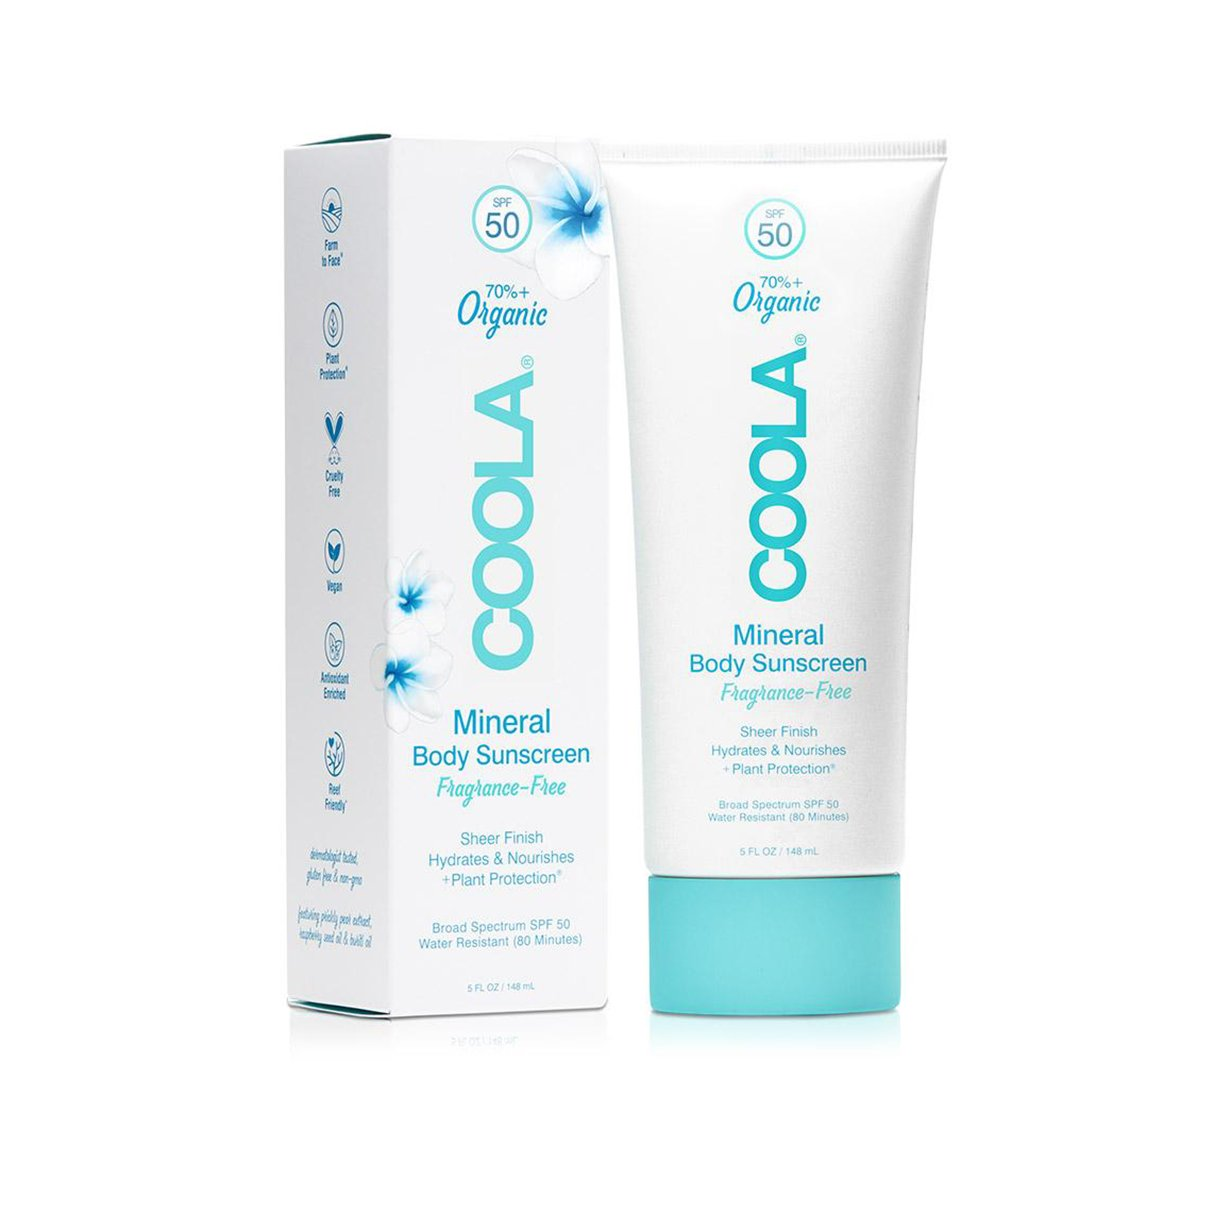 Coola Mineral Body Sunscreen Lotion Spf 50 - Fragrance-Free